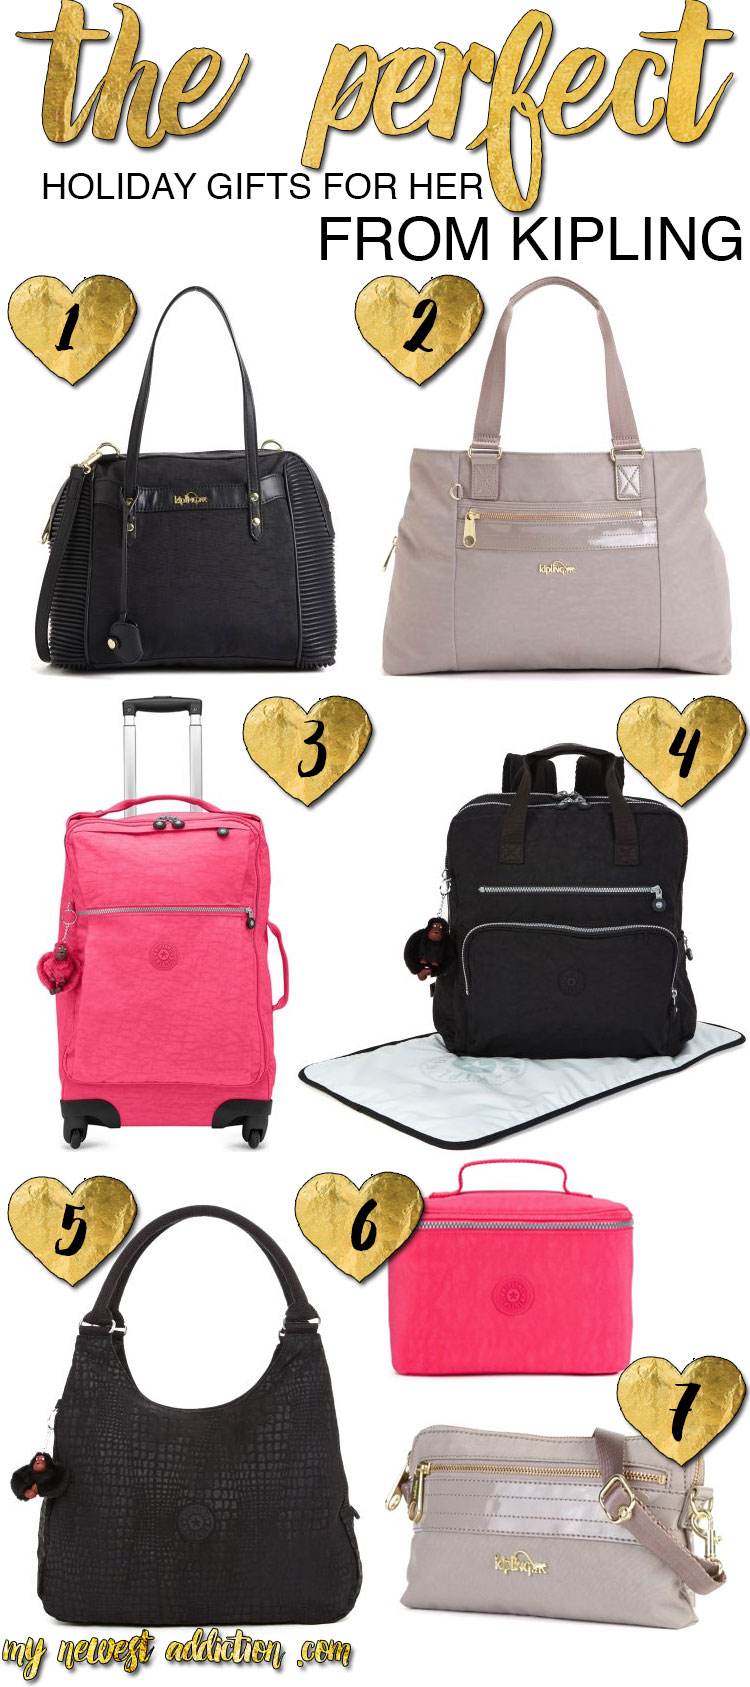 The Perfect Holiday Gifts for Her from Kipling